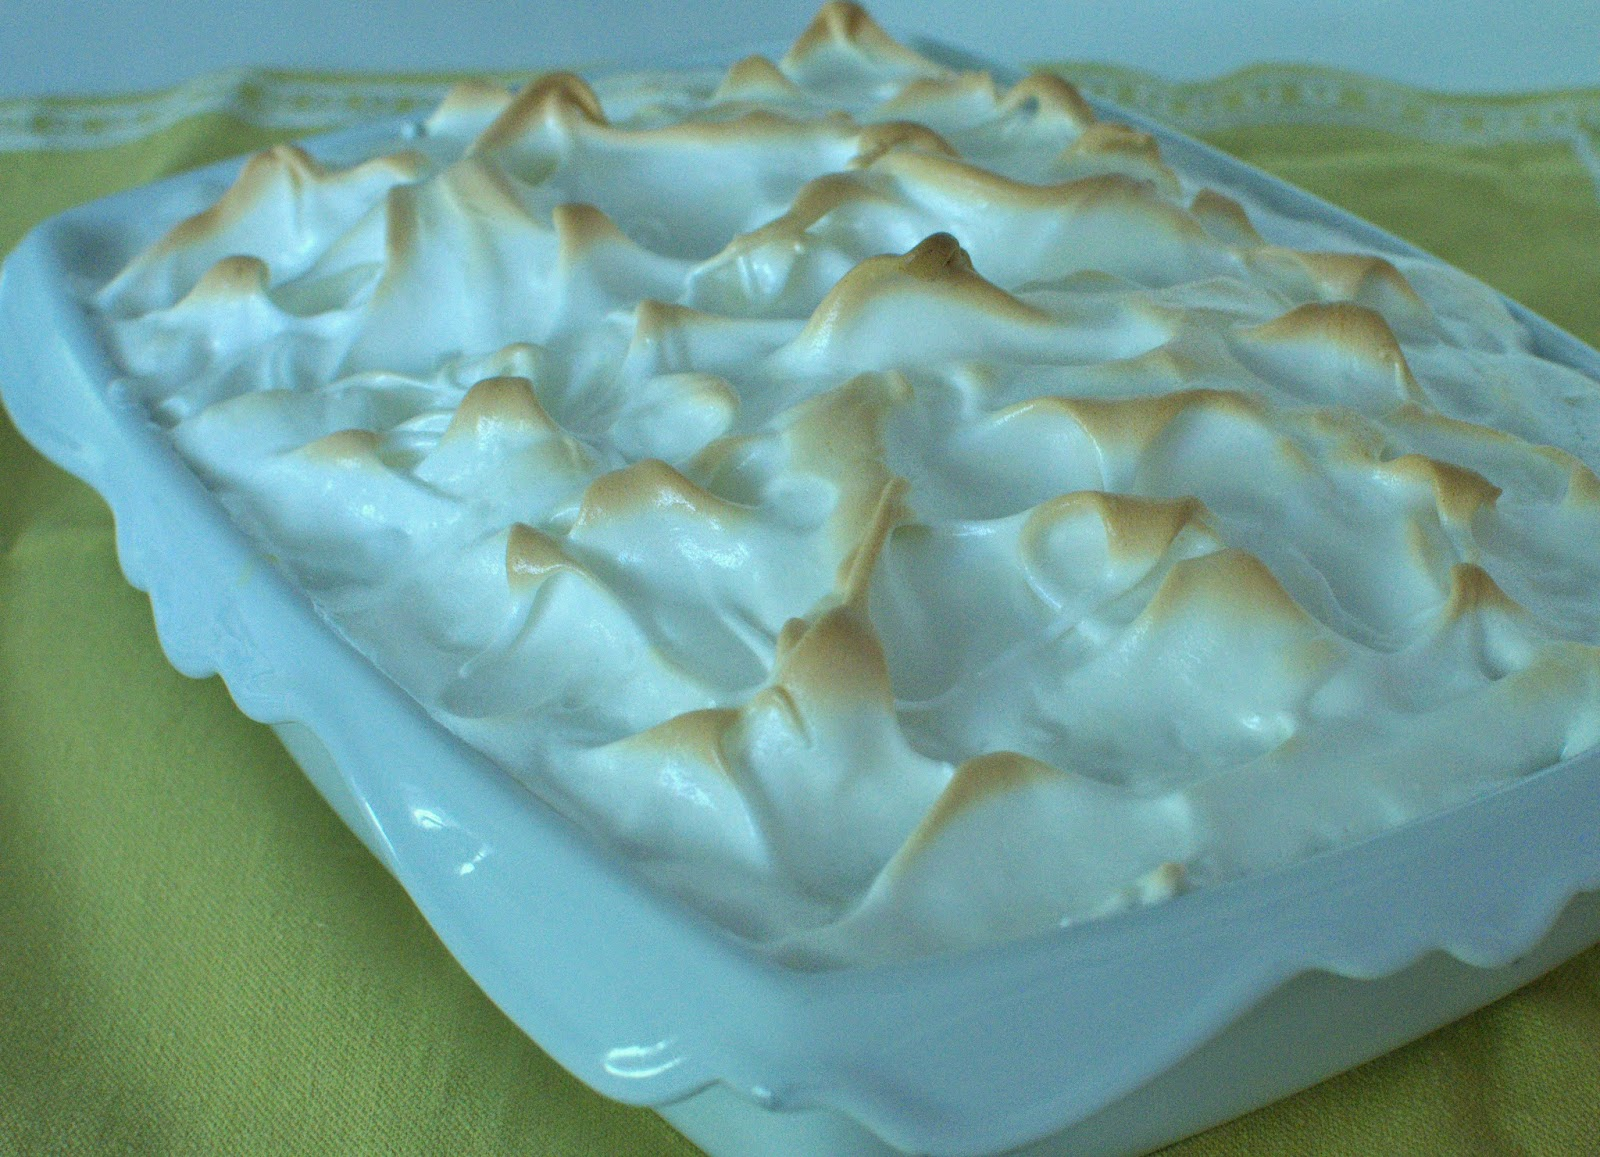 Banana Caramel Pudding With Meringue Topping Recipes — Dishmaps